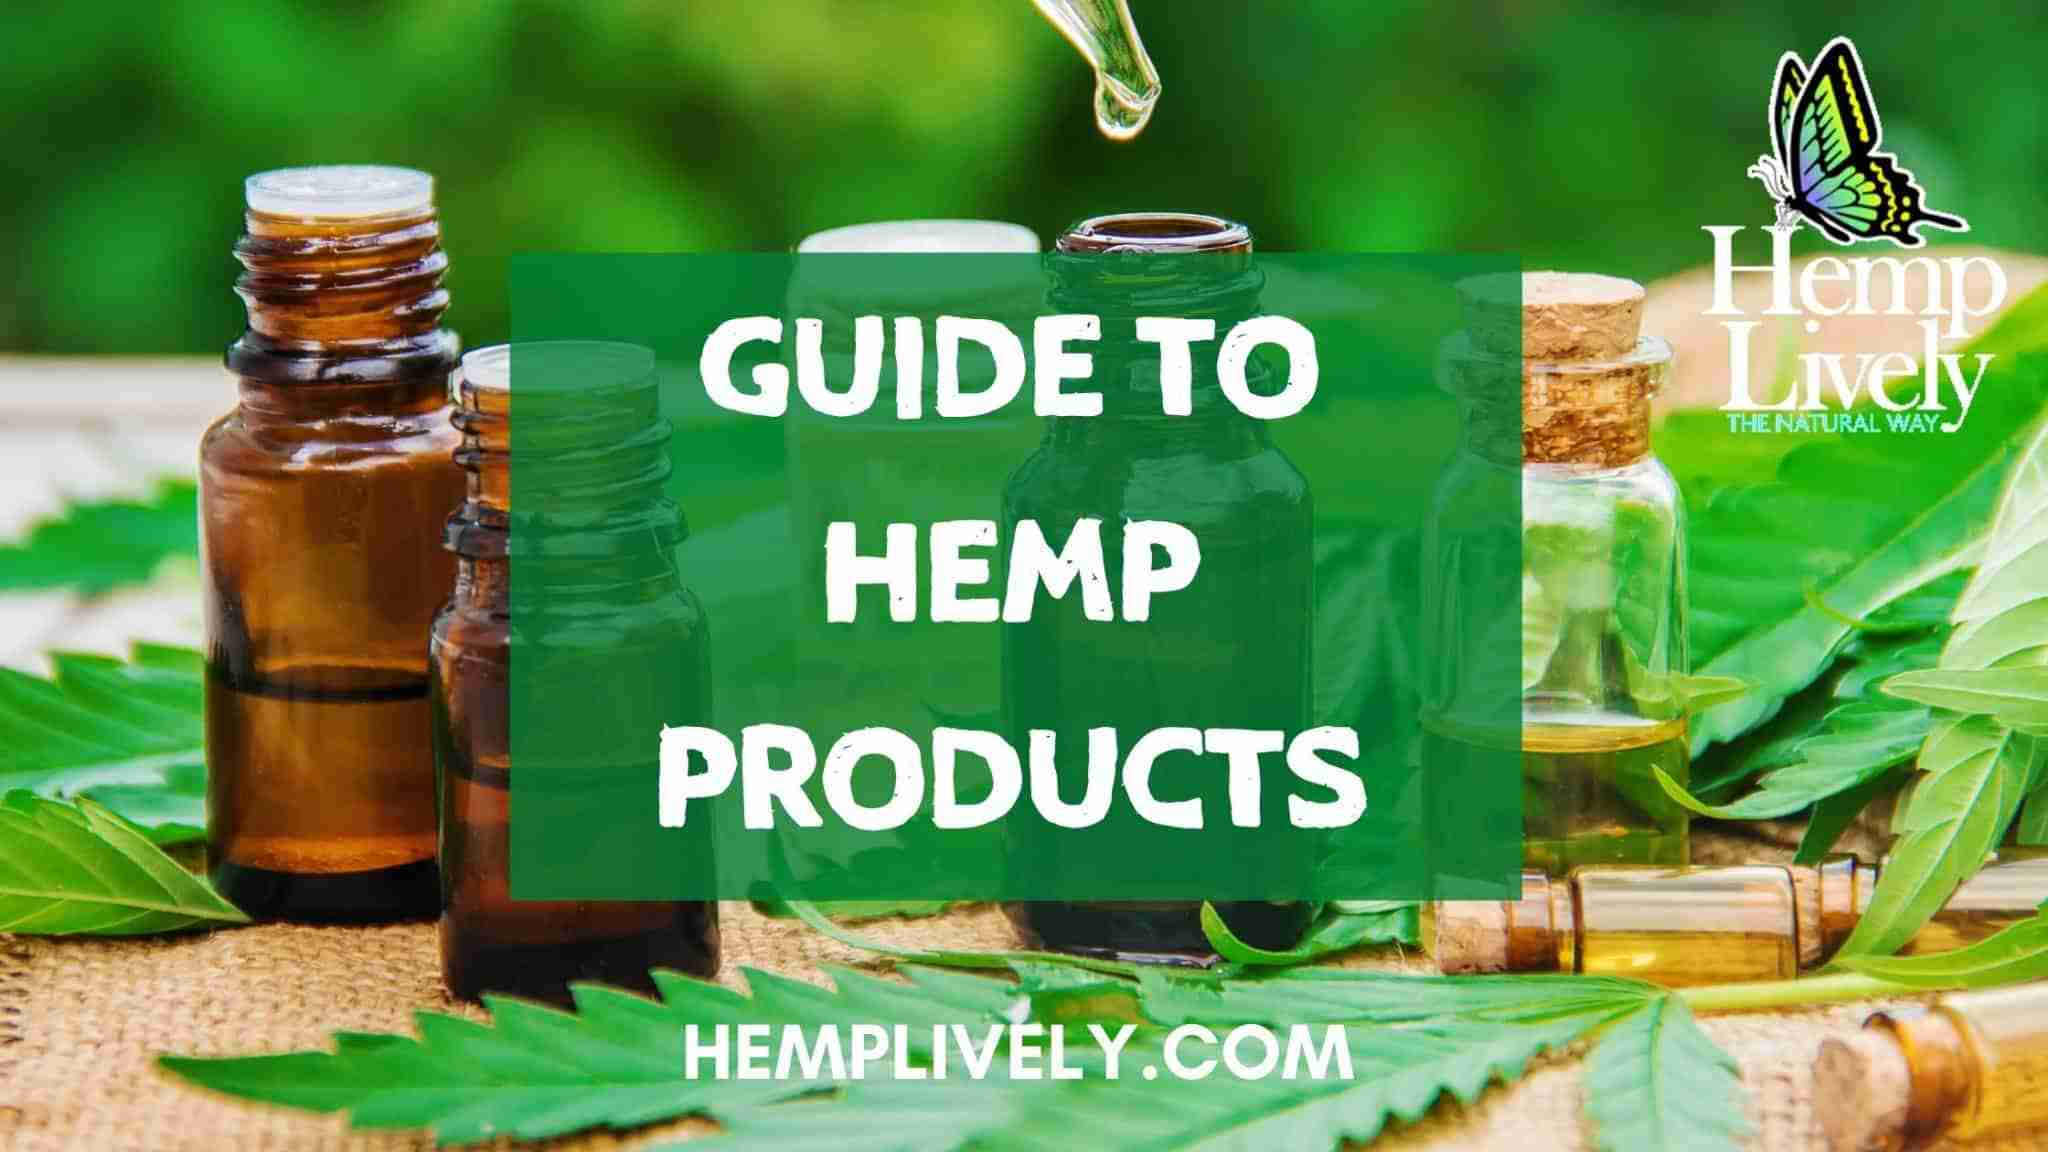 Guide to Hemp Products